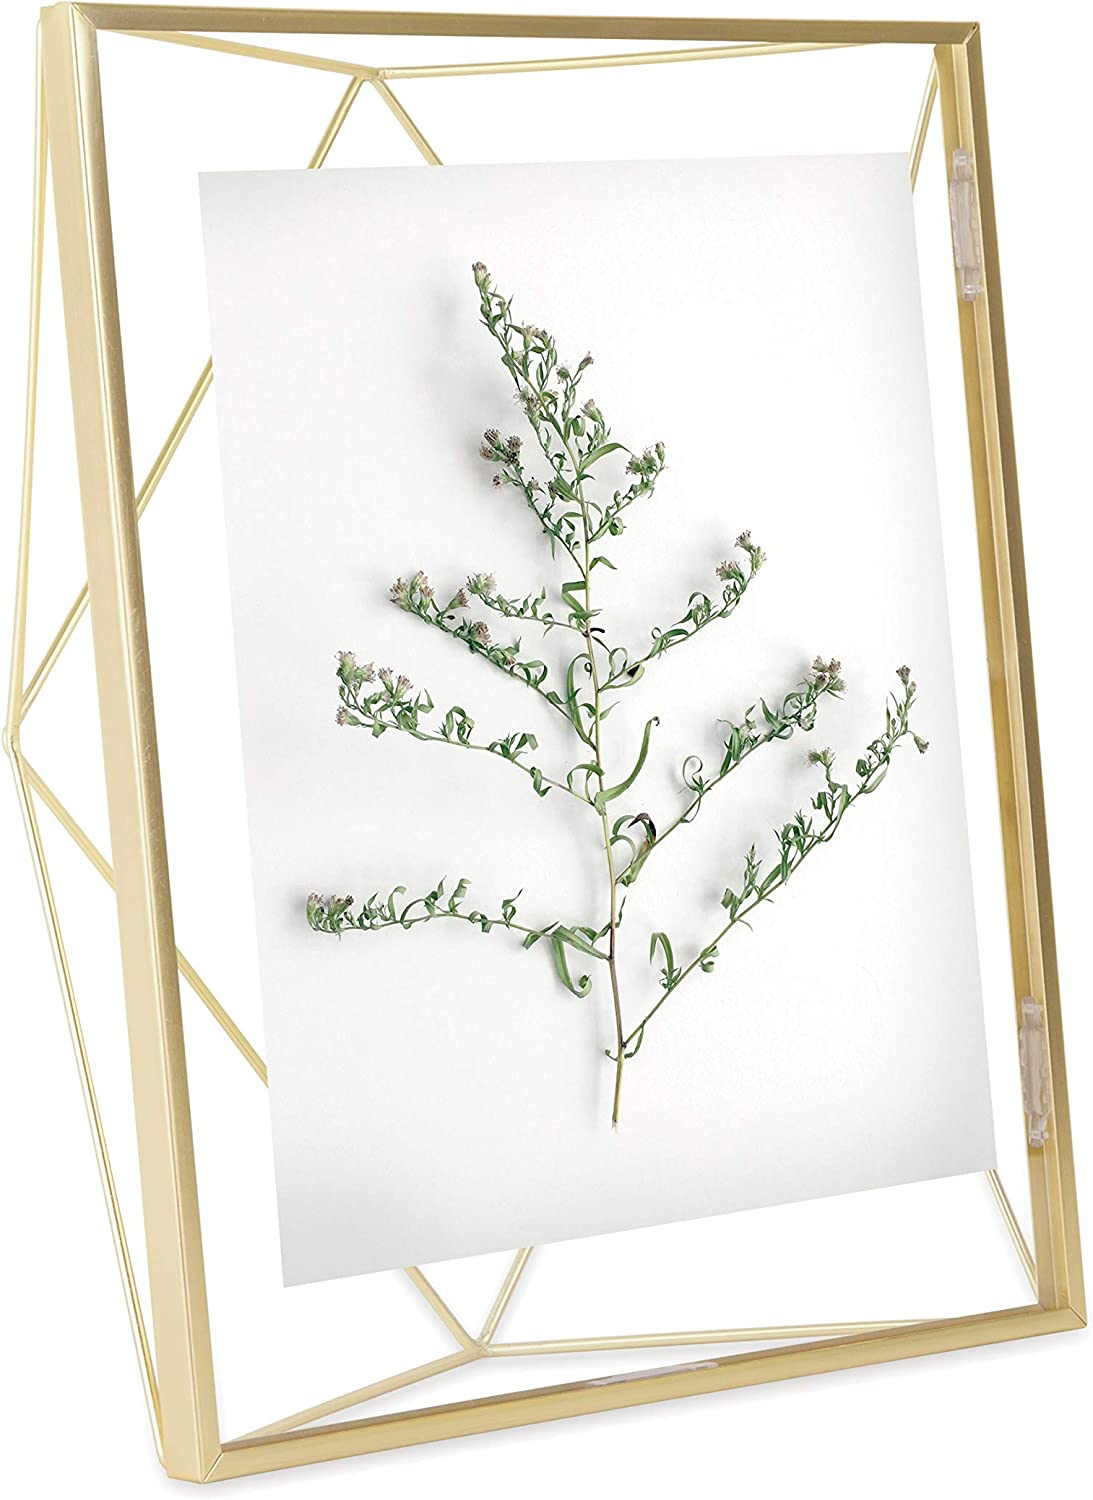 Umbra Prisma Picture Atlanta Mall Frame 8x10 Photo Desk or Charlotte Mall for Wall Display